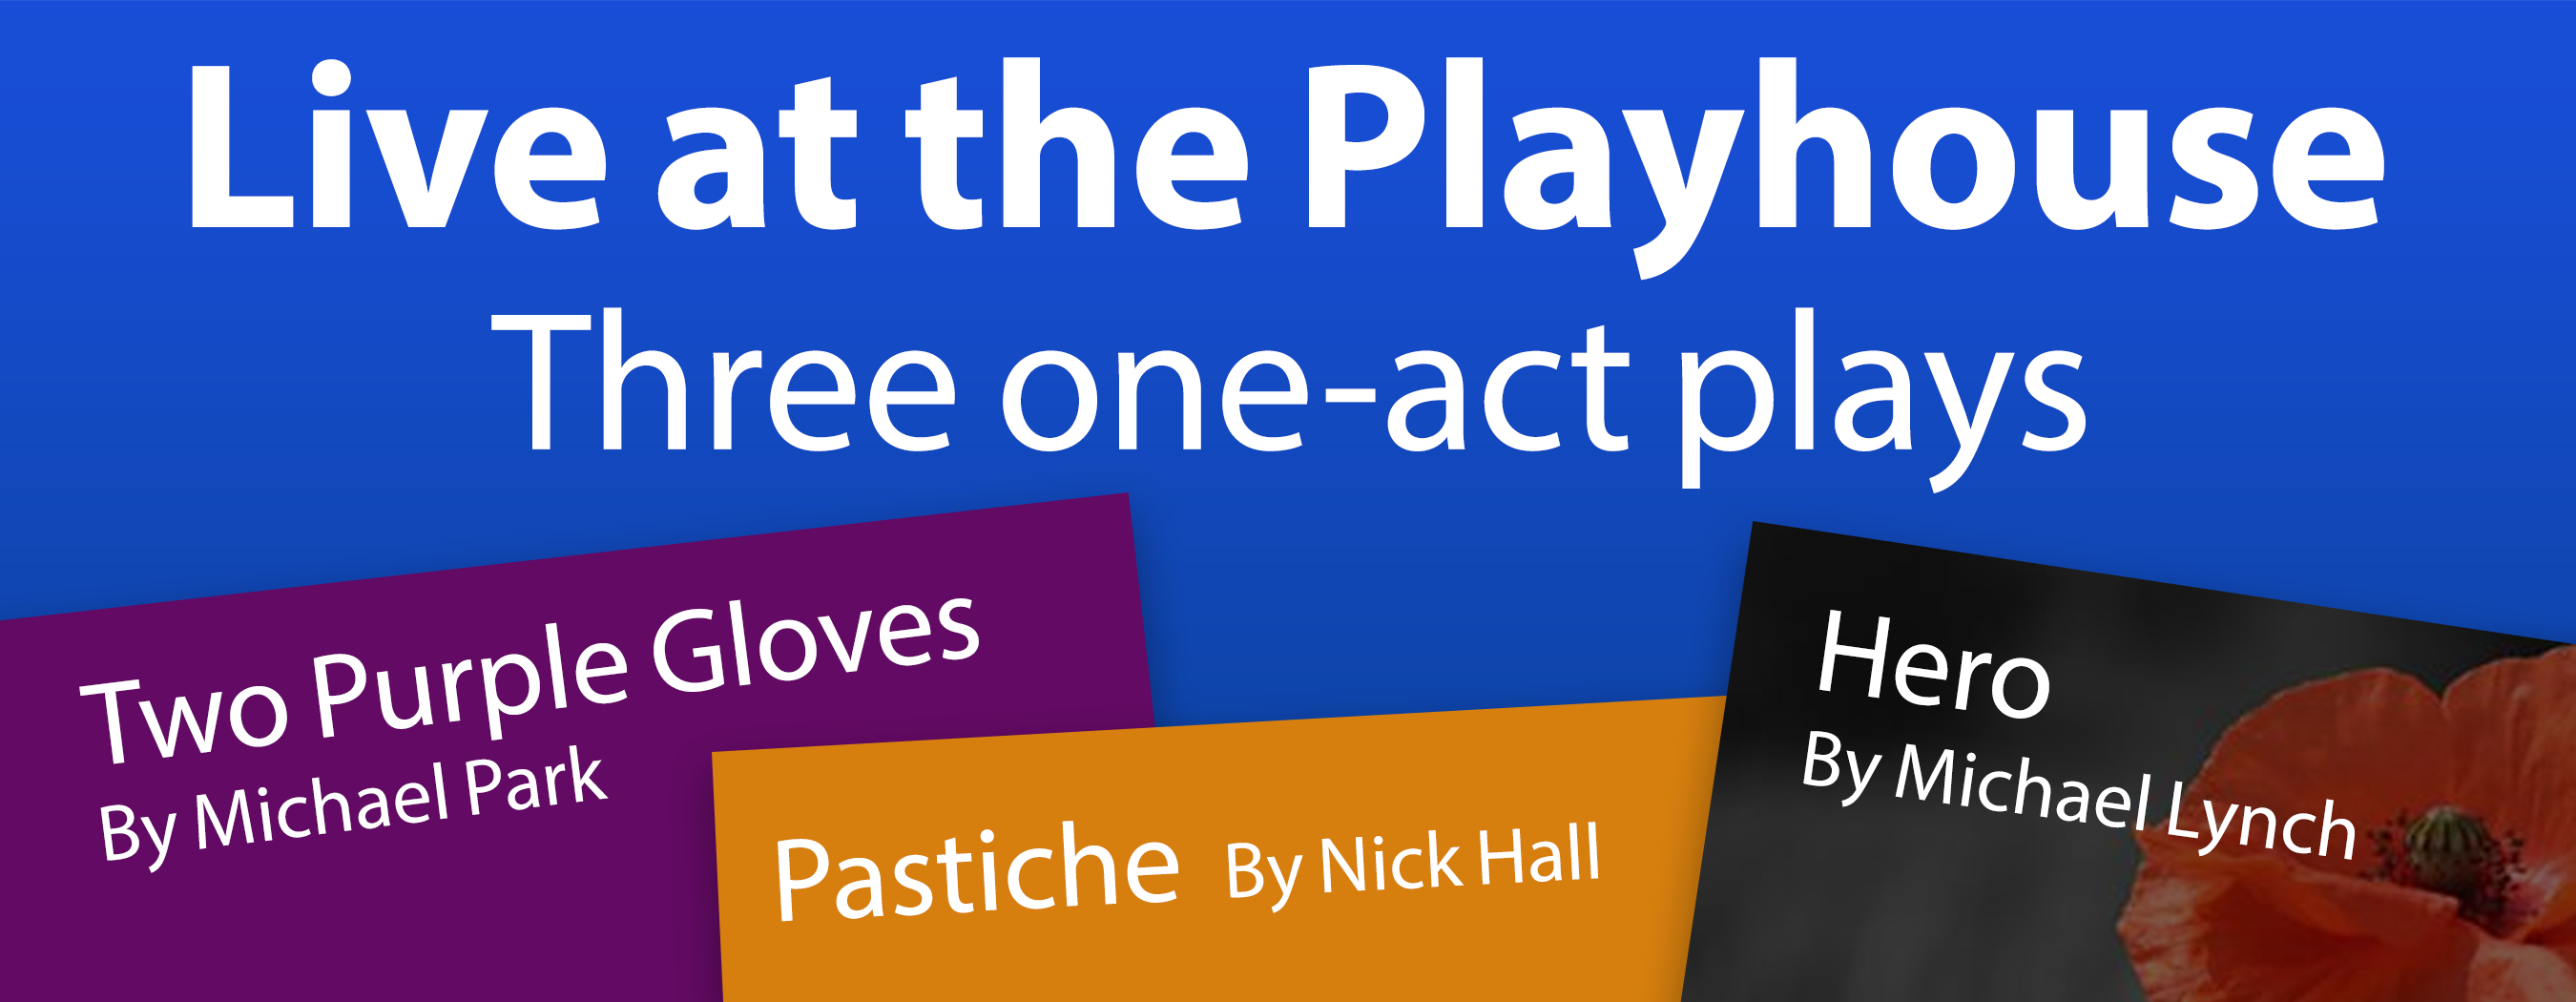 Live at the Playhouse - Three one-act plays